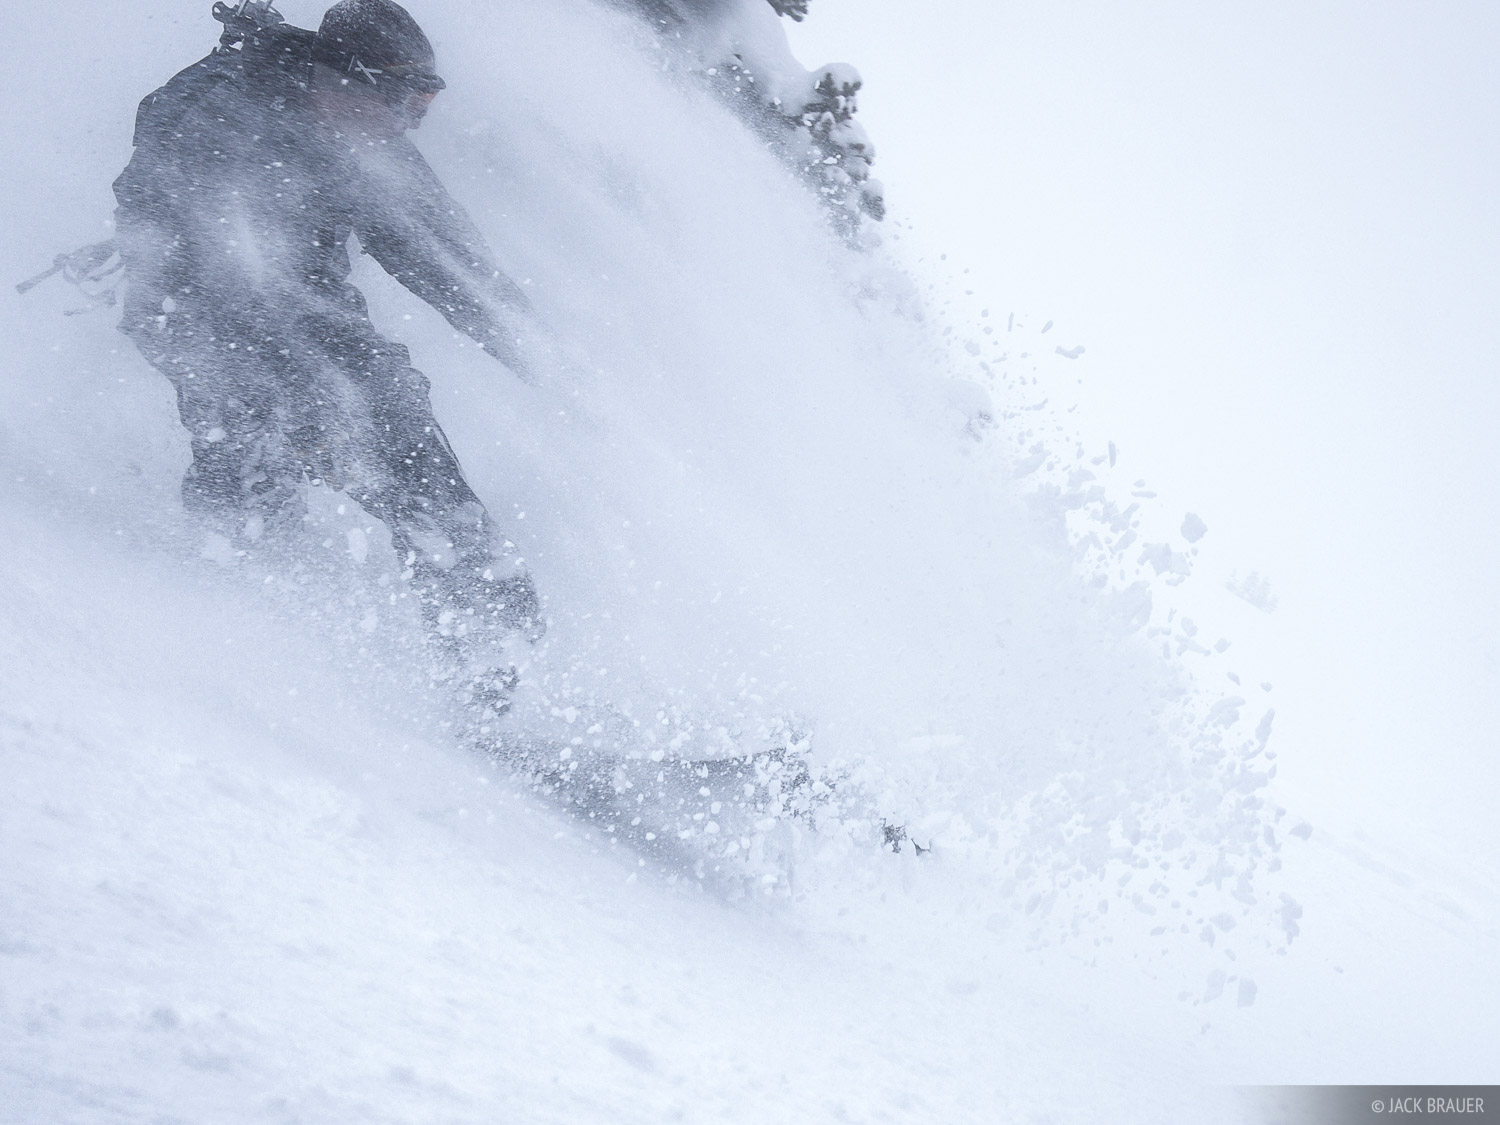 Jason King rides through his own powder cloud, Teton Pass, April.